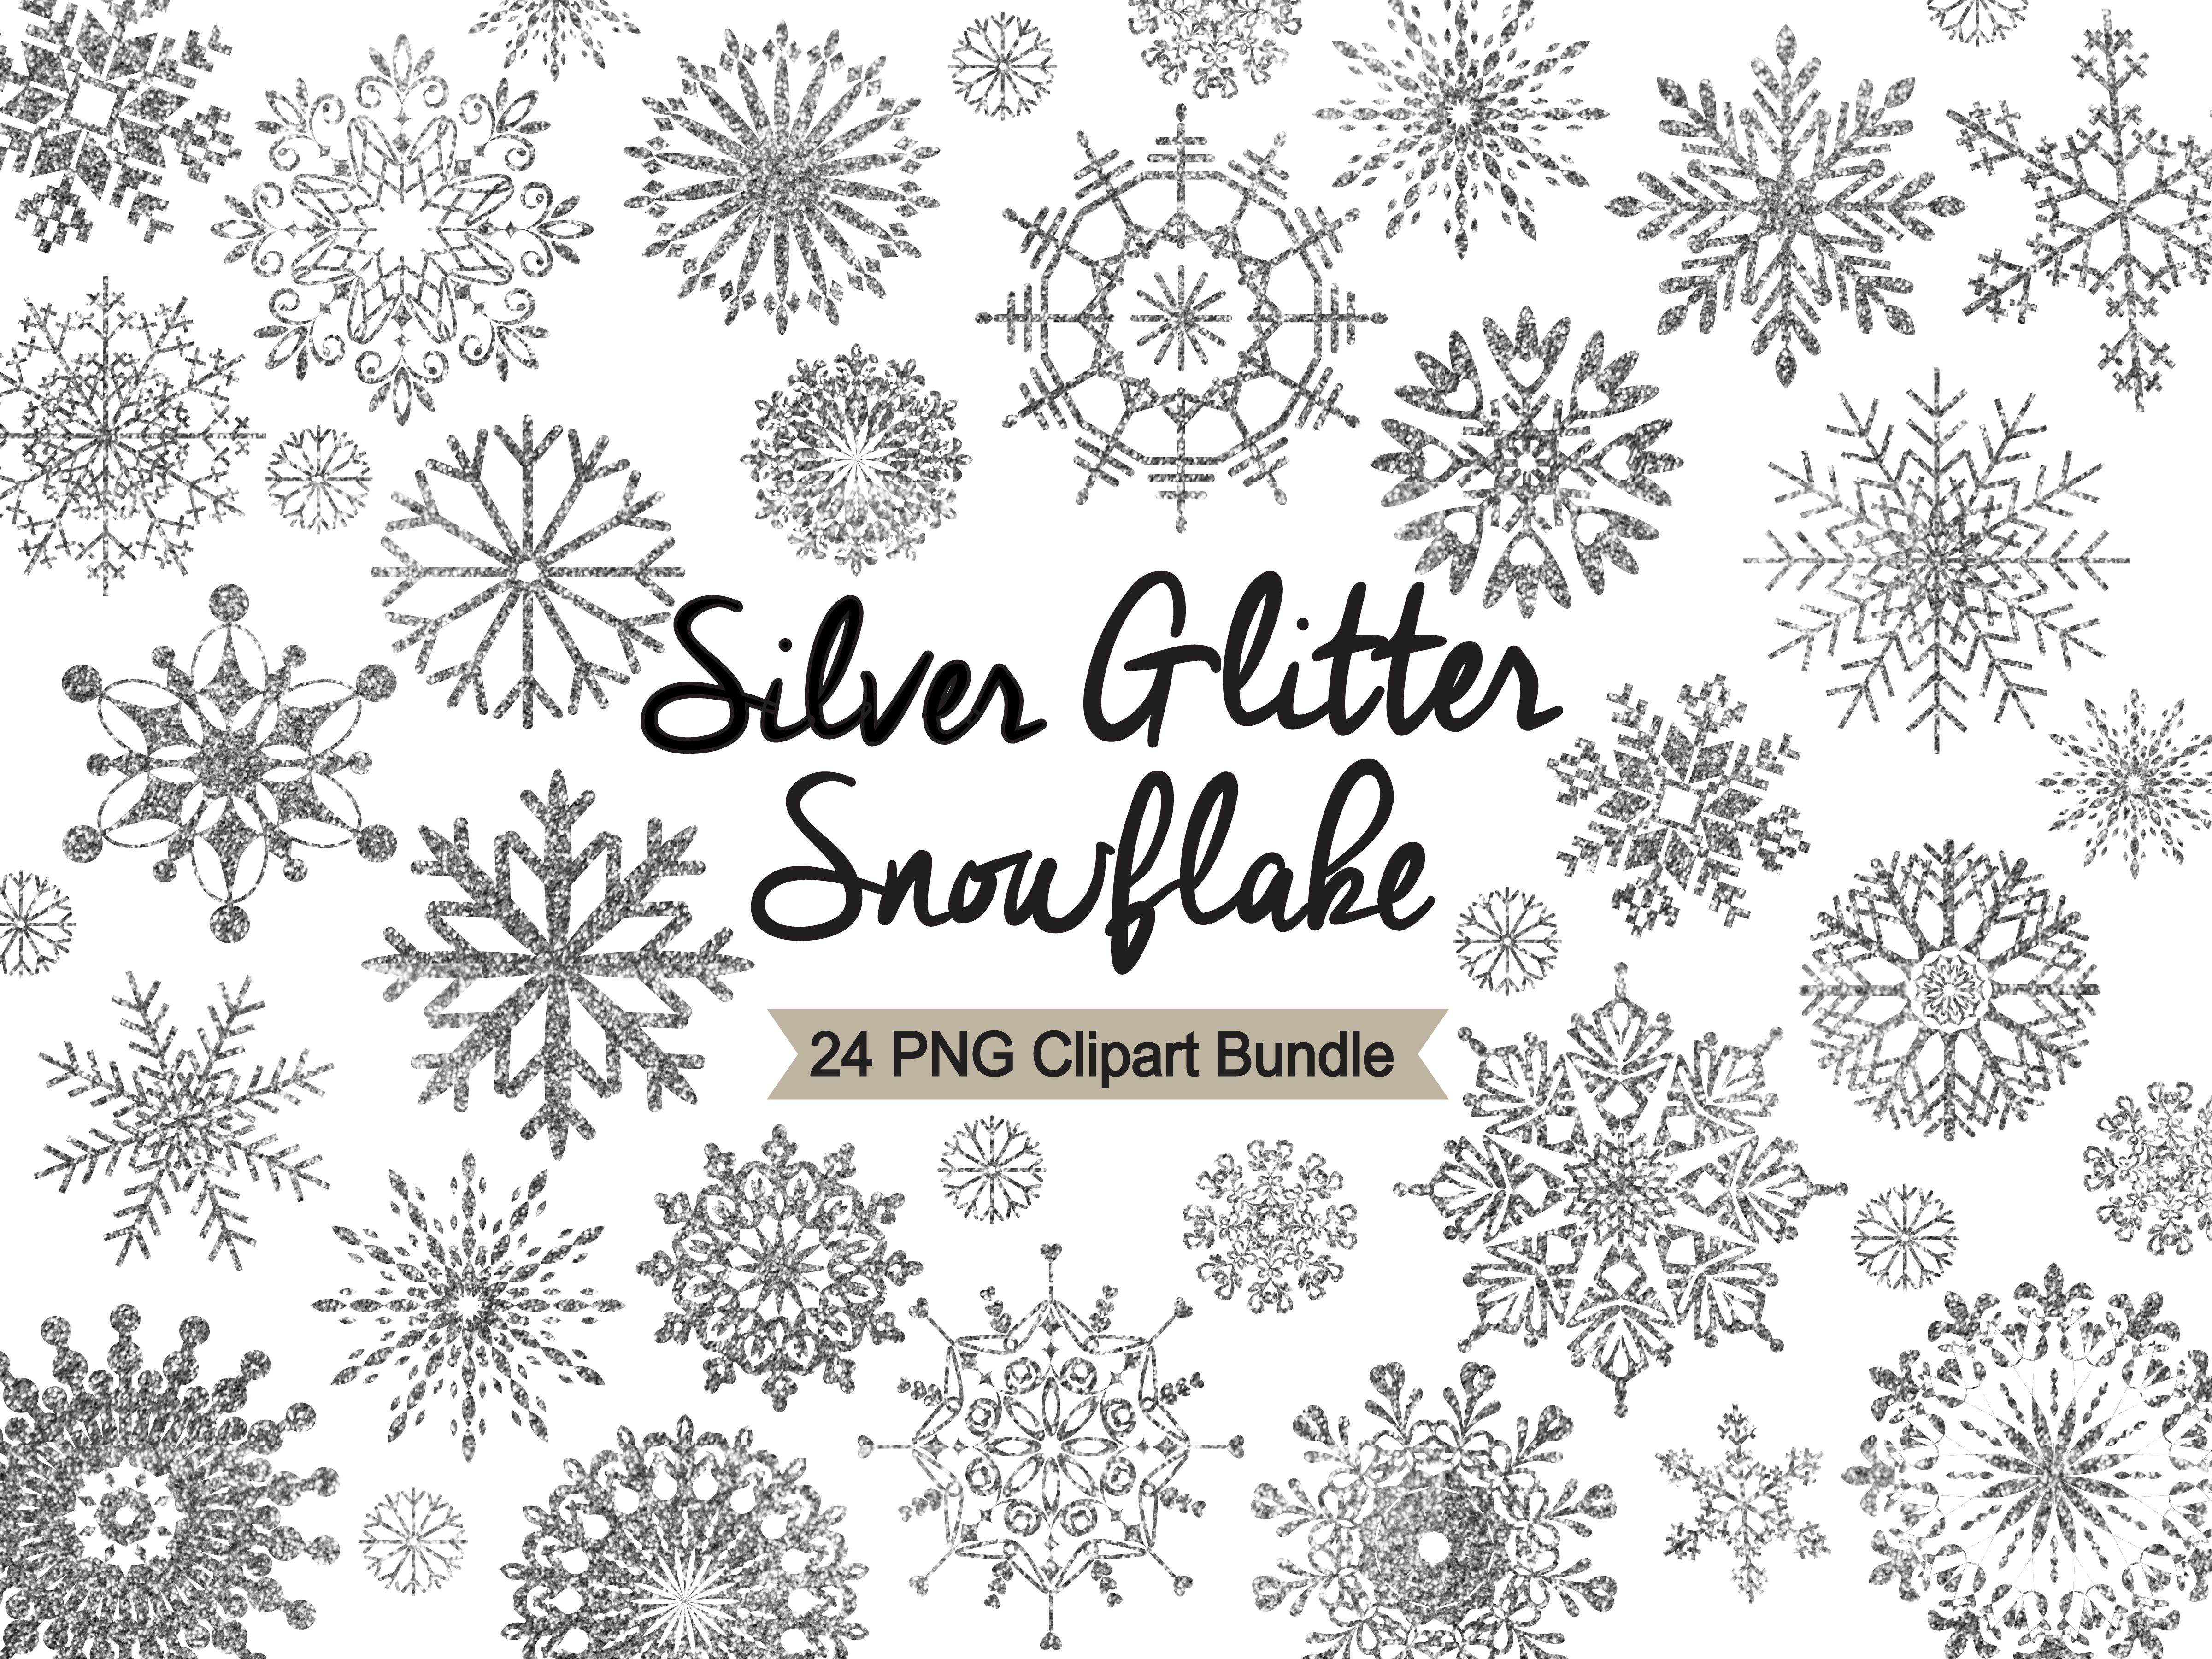 Snowflake clipart silver.